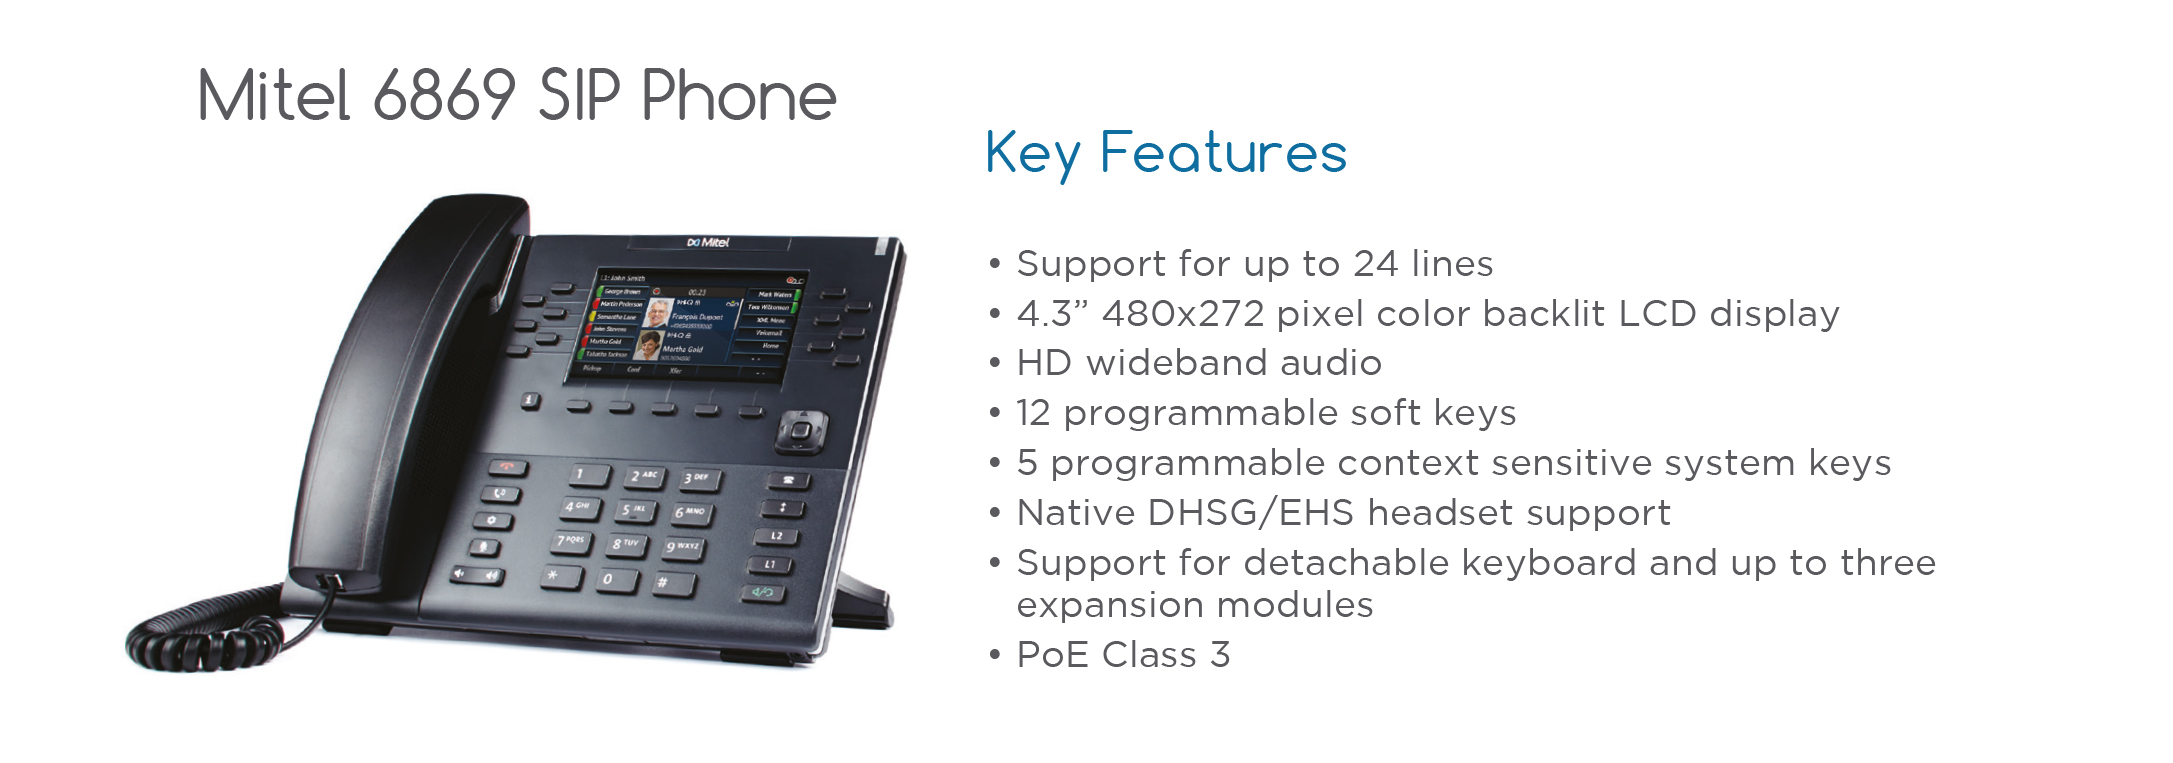 Mitel 5320 Specs: Leading Communications Design Inc Mitel 5320e 5320